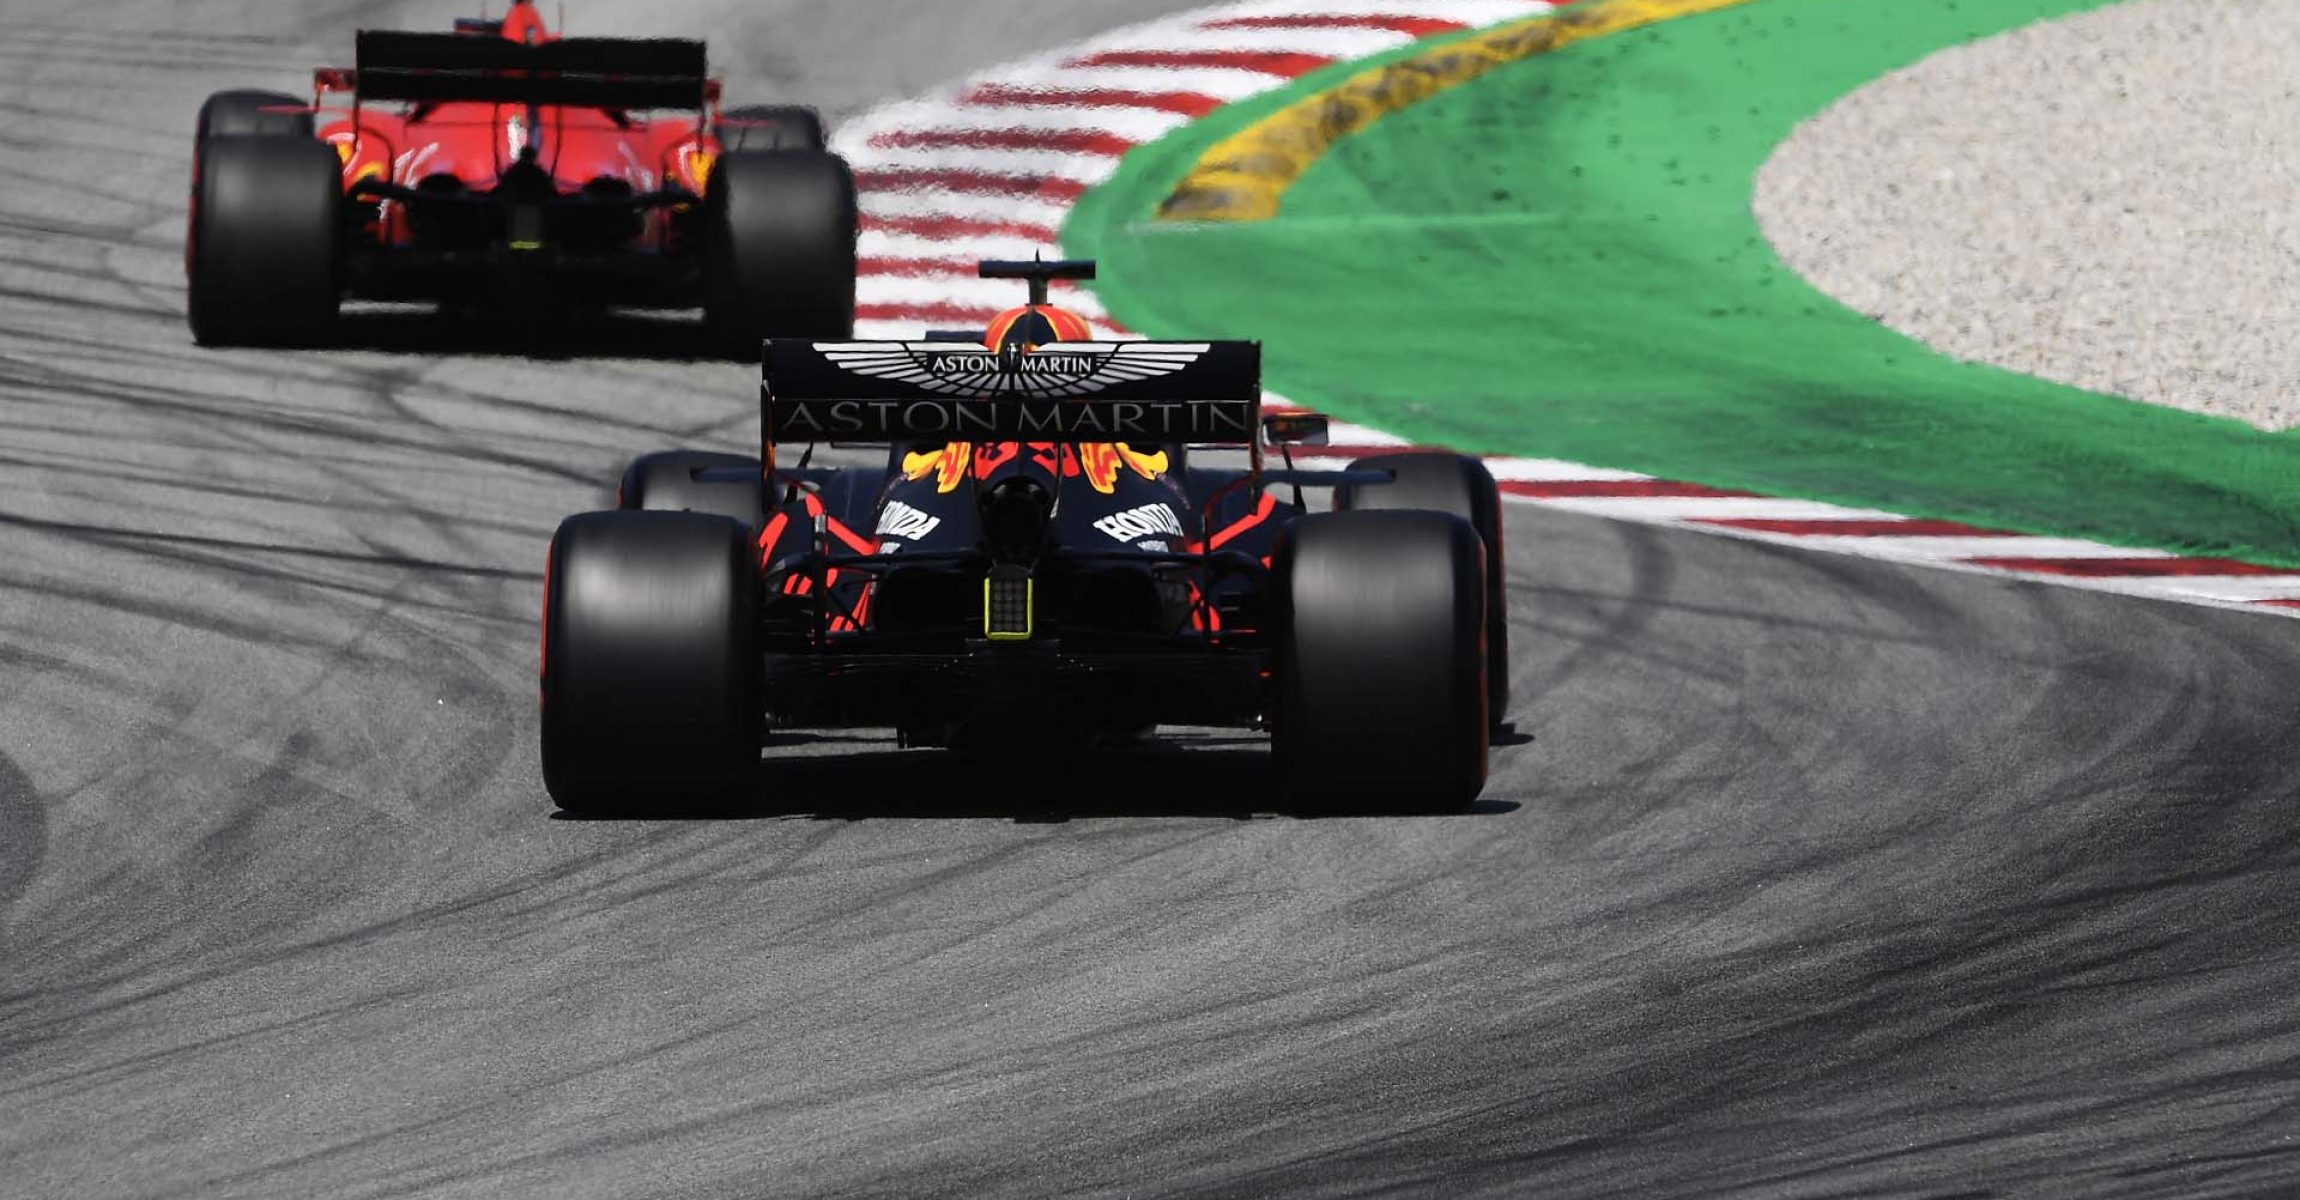 BARCELONA, SPAIN - AUGUST 15: Max Verstappen of the Netherlands driving the (33) Aston Martin Red Bull Racing RB16 on track during final practice for the F1 Grand Prix of Spain at Circuit de Barcelona-Catalunya on August 15, 2020 in Barcelona, Spain. (Photo by Josep Lago/Pool via Getty Images)